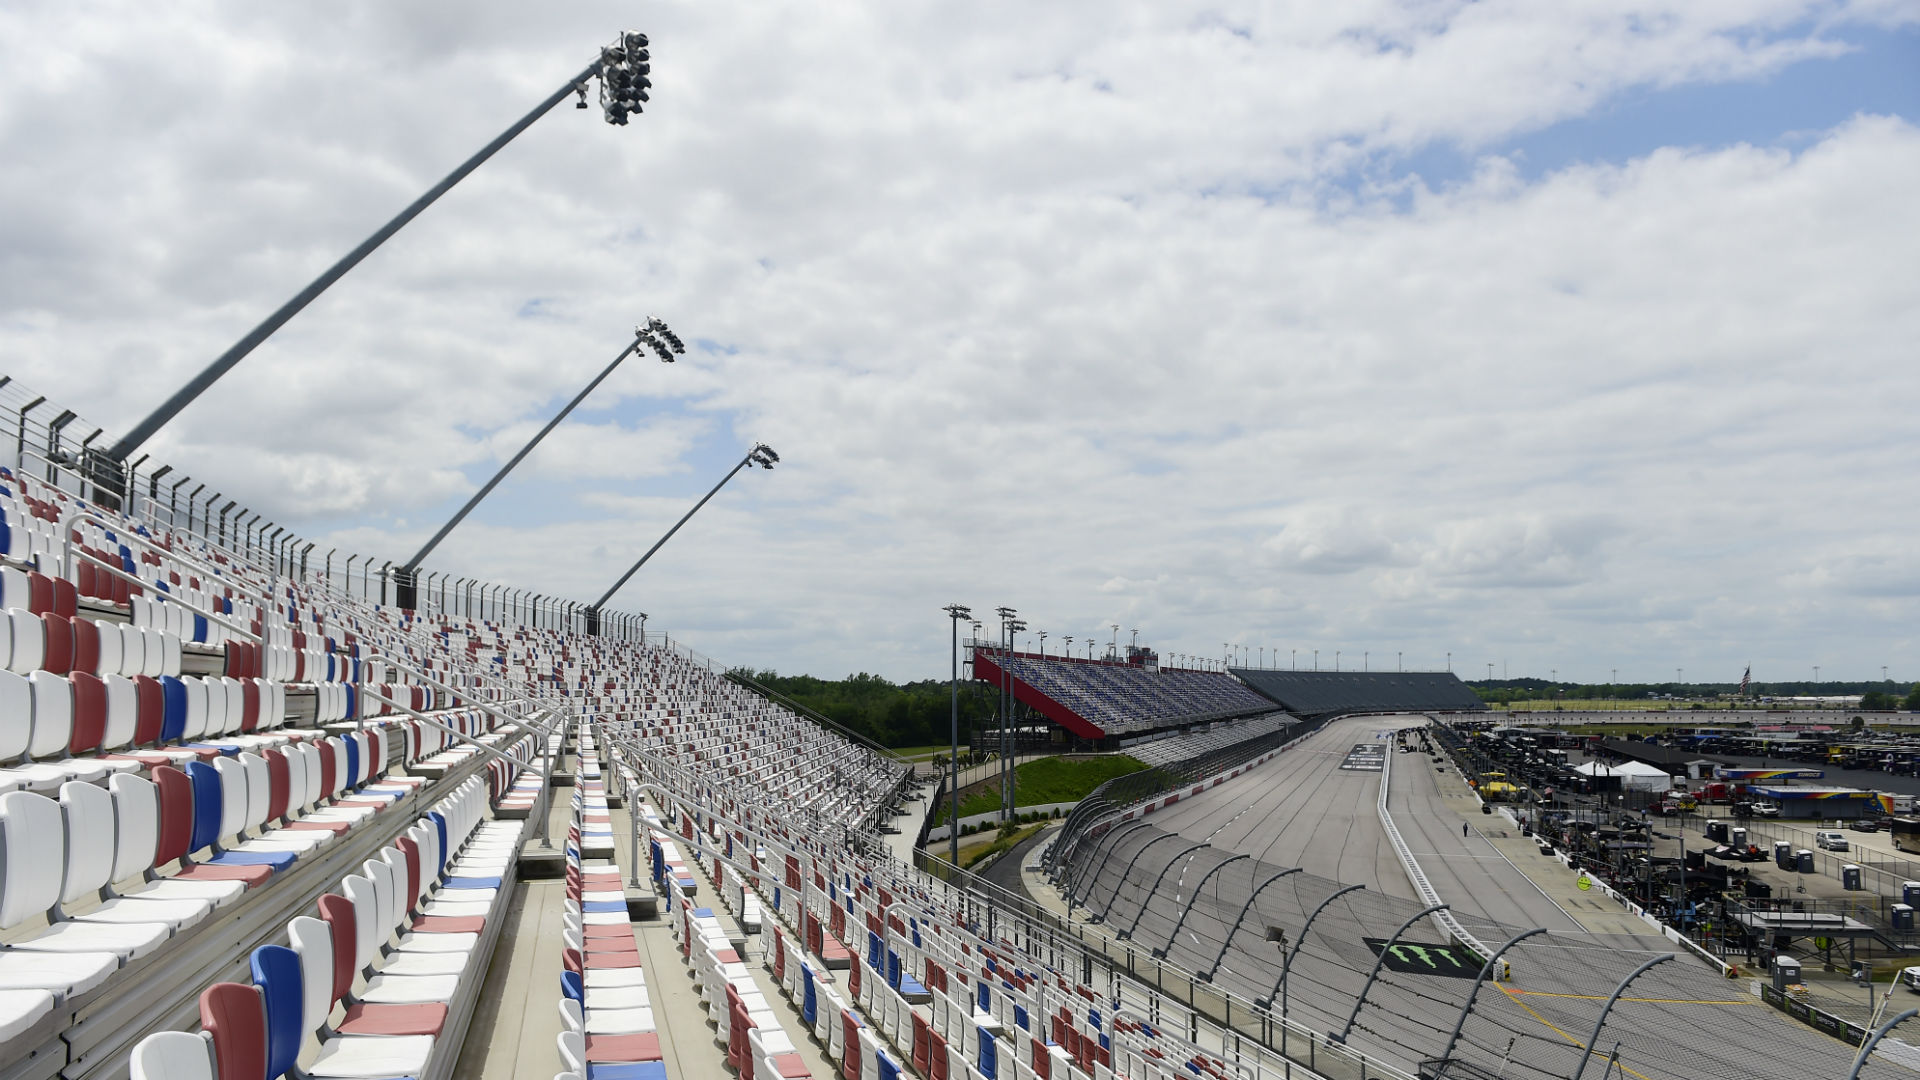 NASCAR race weather: How long will rain in Darlington forecast delay Thursday's Xfinity Series race?